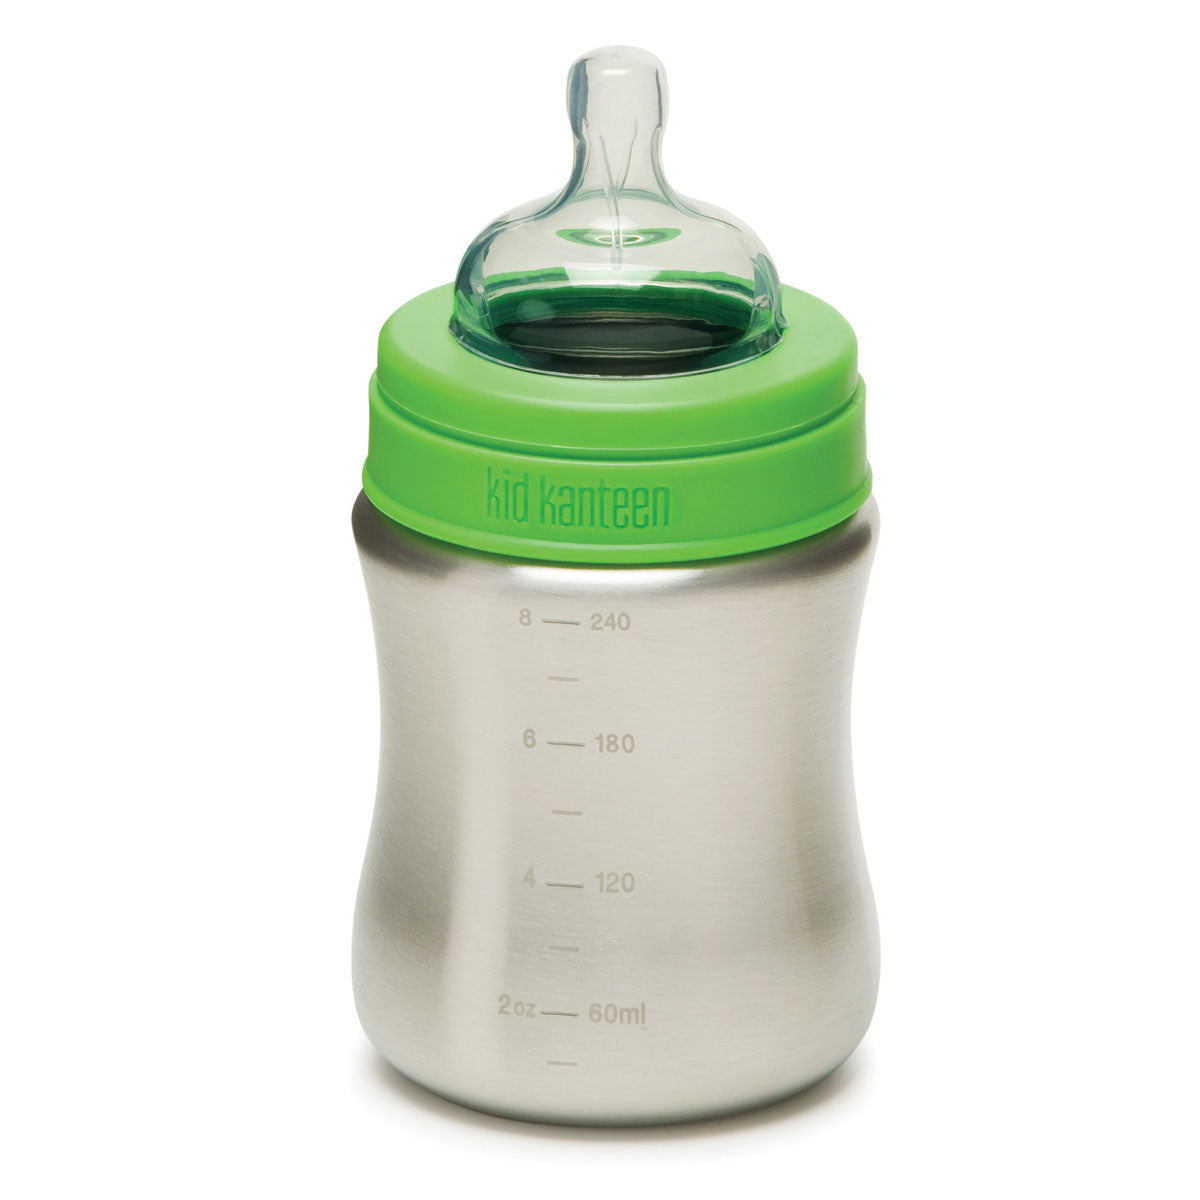 Klean Kanteen Stainless Steel Baby Bottle  267ml 9oz Medium Flow Bottle - Klean Kanteen - Little Earth Nest - 3